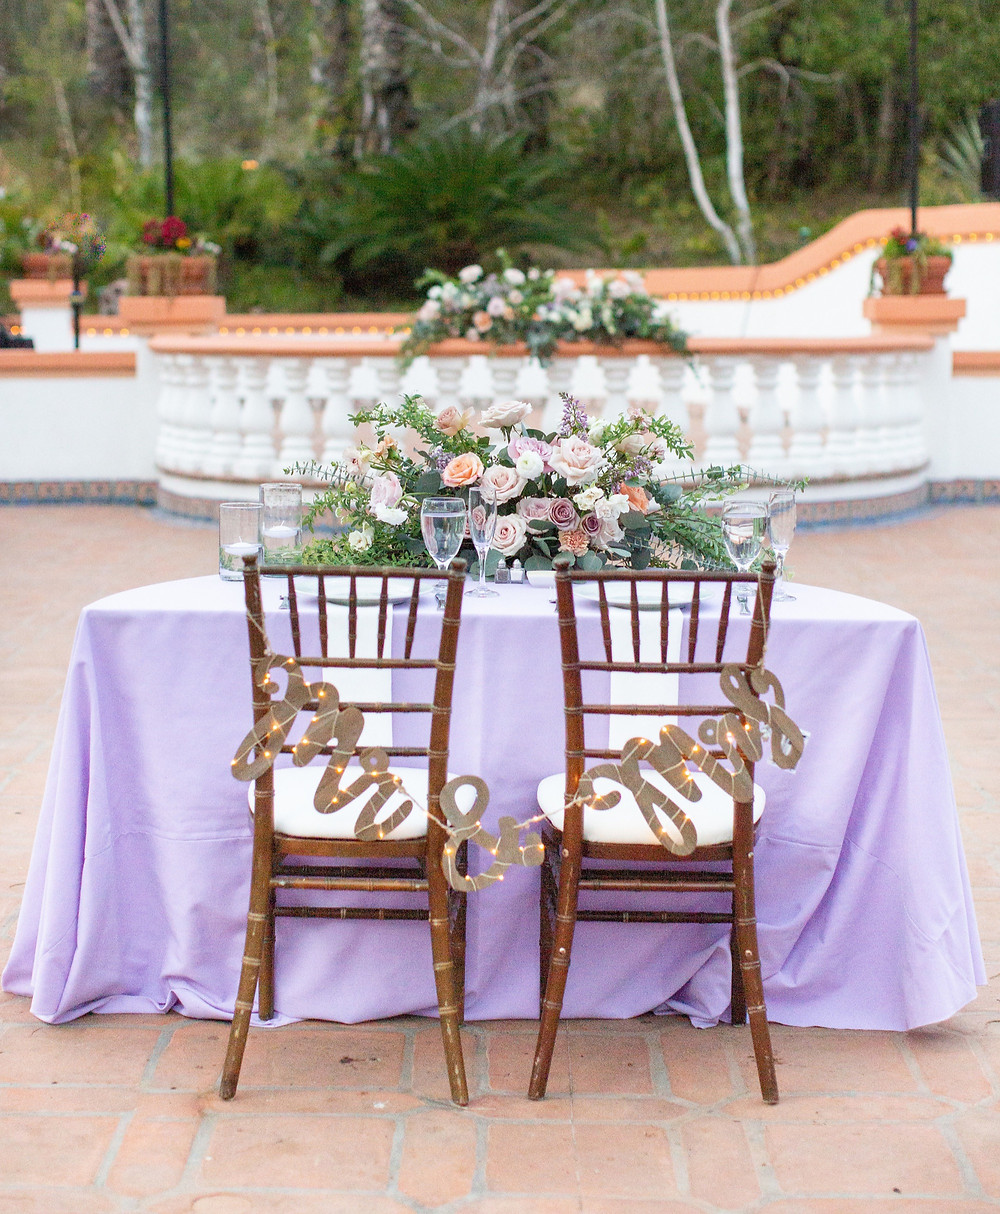 Beautiful Sweetheart Table flowers for a purple wedding, filled with eucalyptus, sweet peas, carnations, ranunculus, lilac, spray roses, and amnesia roses that perfectly matched their purple and mauve color palette  for a stunning wedding at Rancho Las Lomas in Orange County, CA made by San Diego wedding florist Le Champange Projects